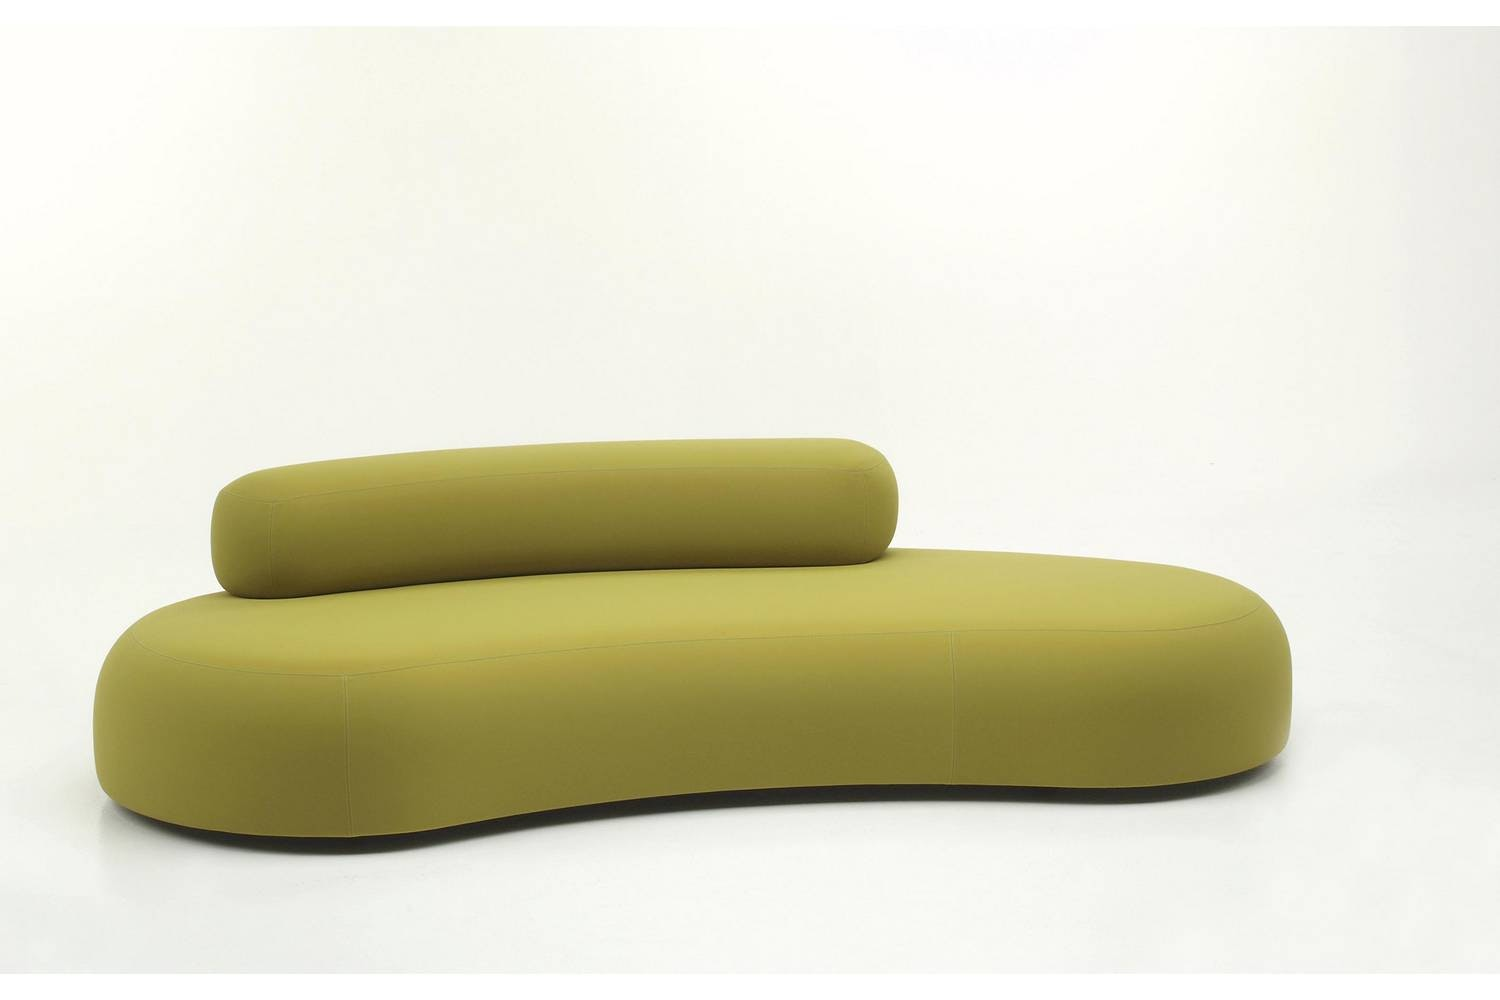 Bubble Rock Sofa by Piero Lissoni for Living Divani